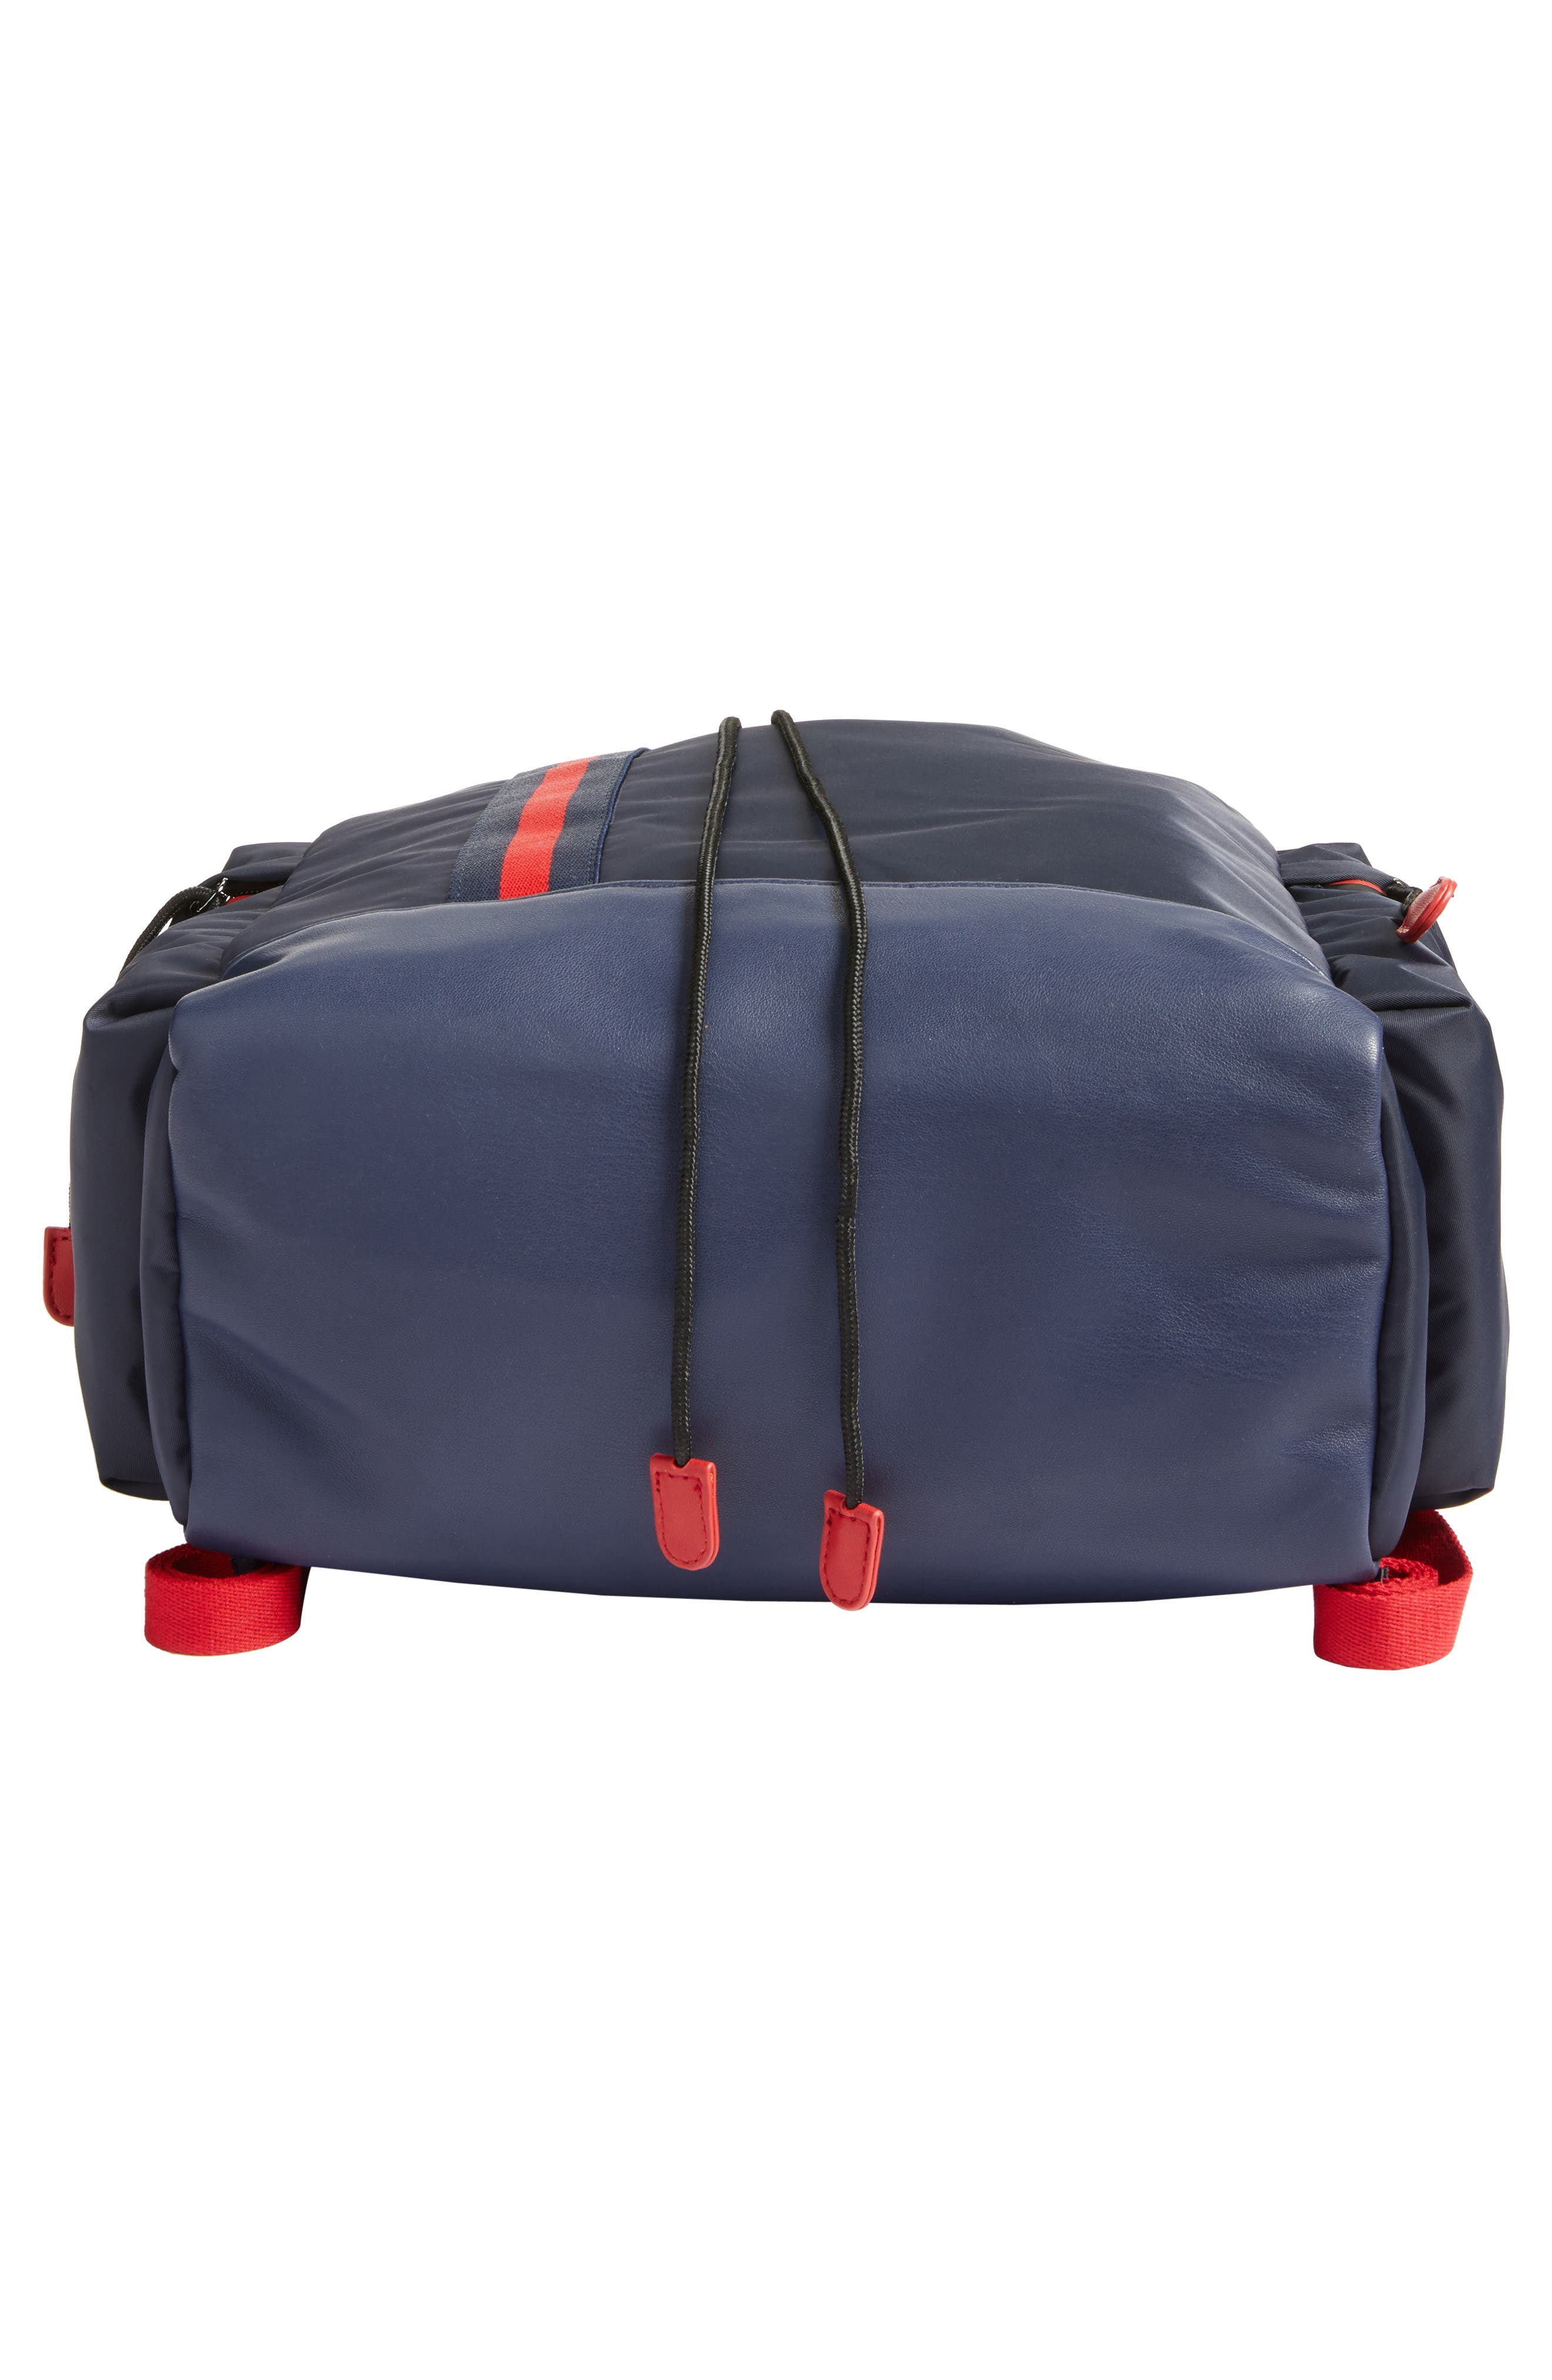 Yungg Stripe Strap Backpack,                             Alternate thumbnail 6, color,                             Navy/ Red